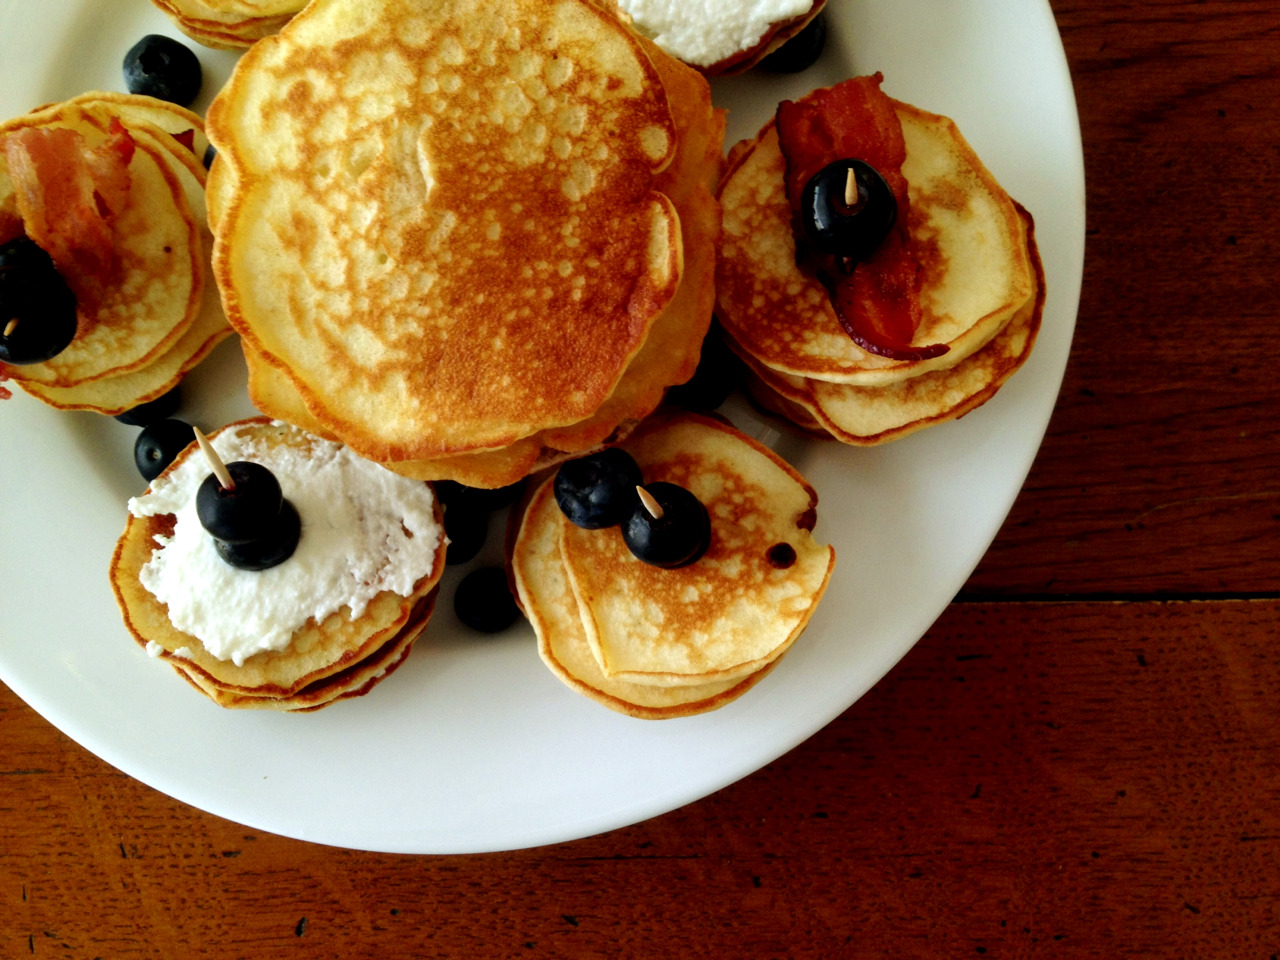 escapenotice:  We made some mean pancakes this morning.